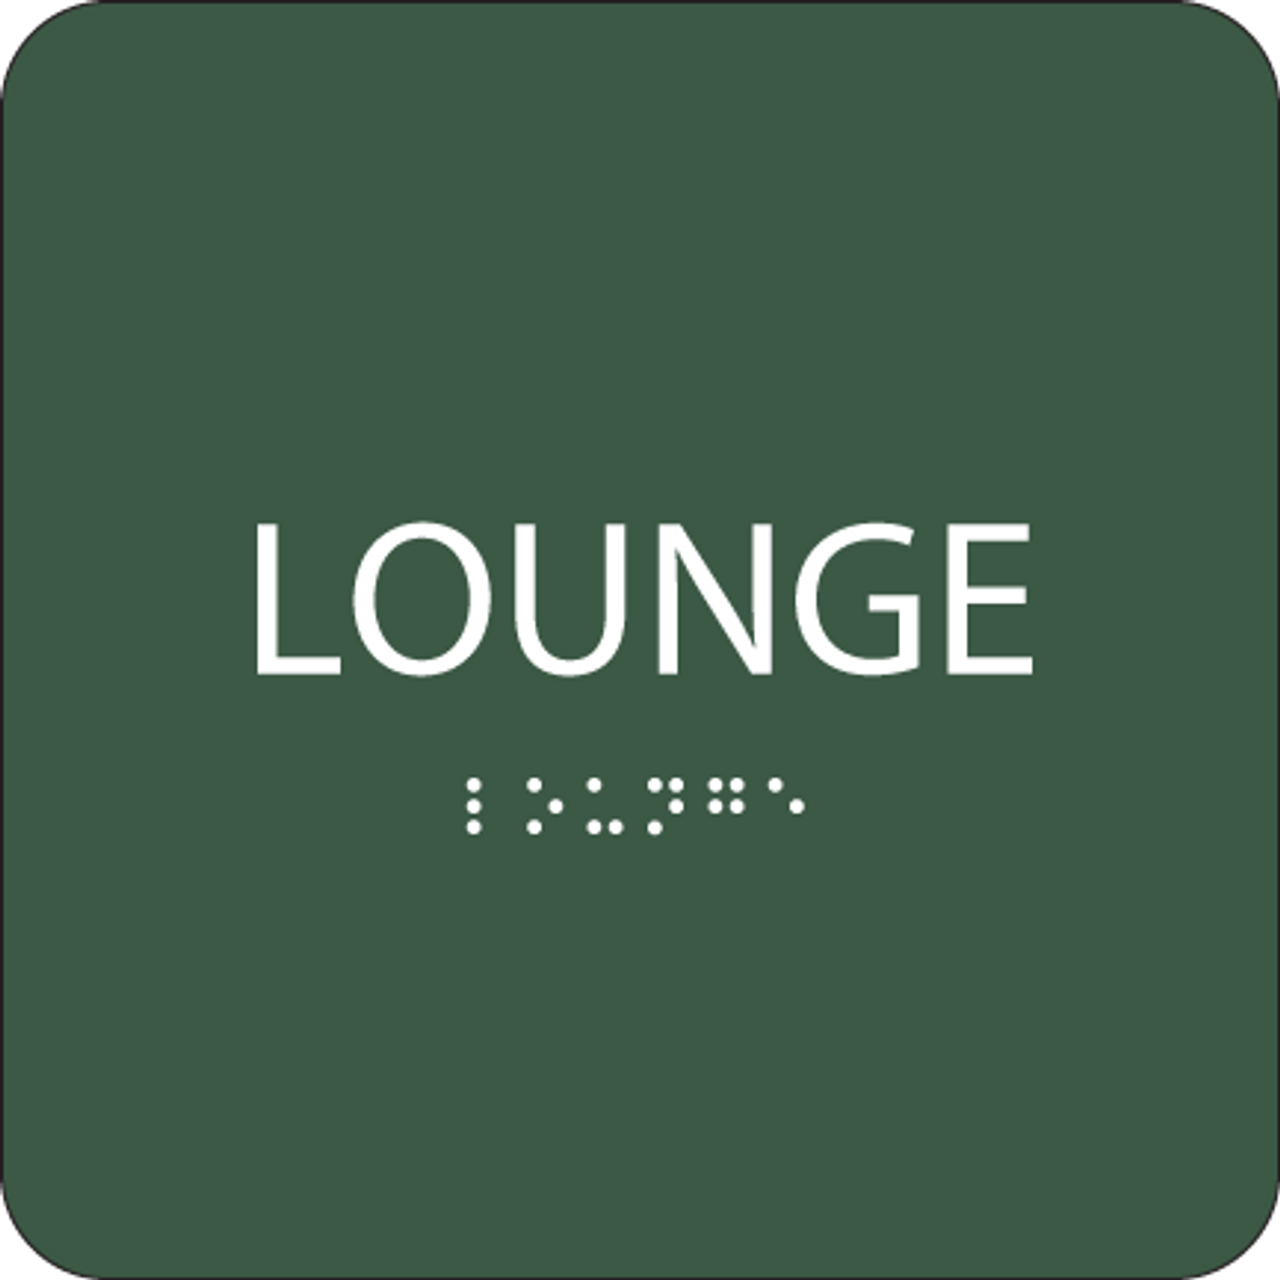 Green Lounge Tactile Sign